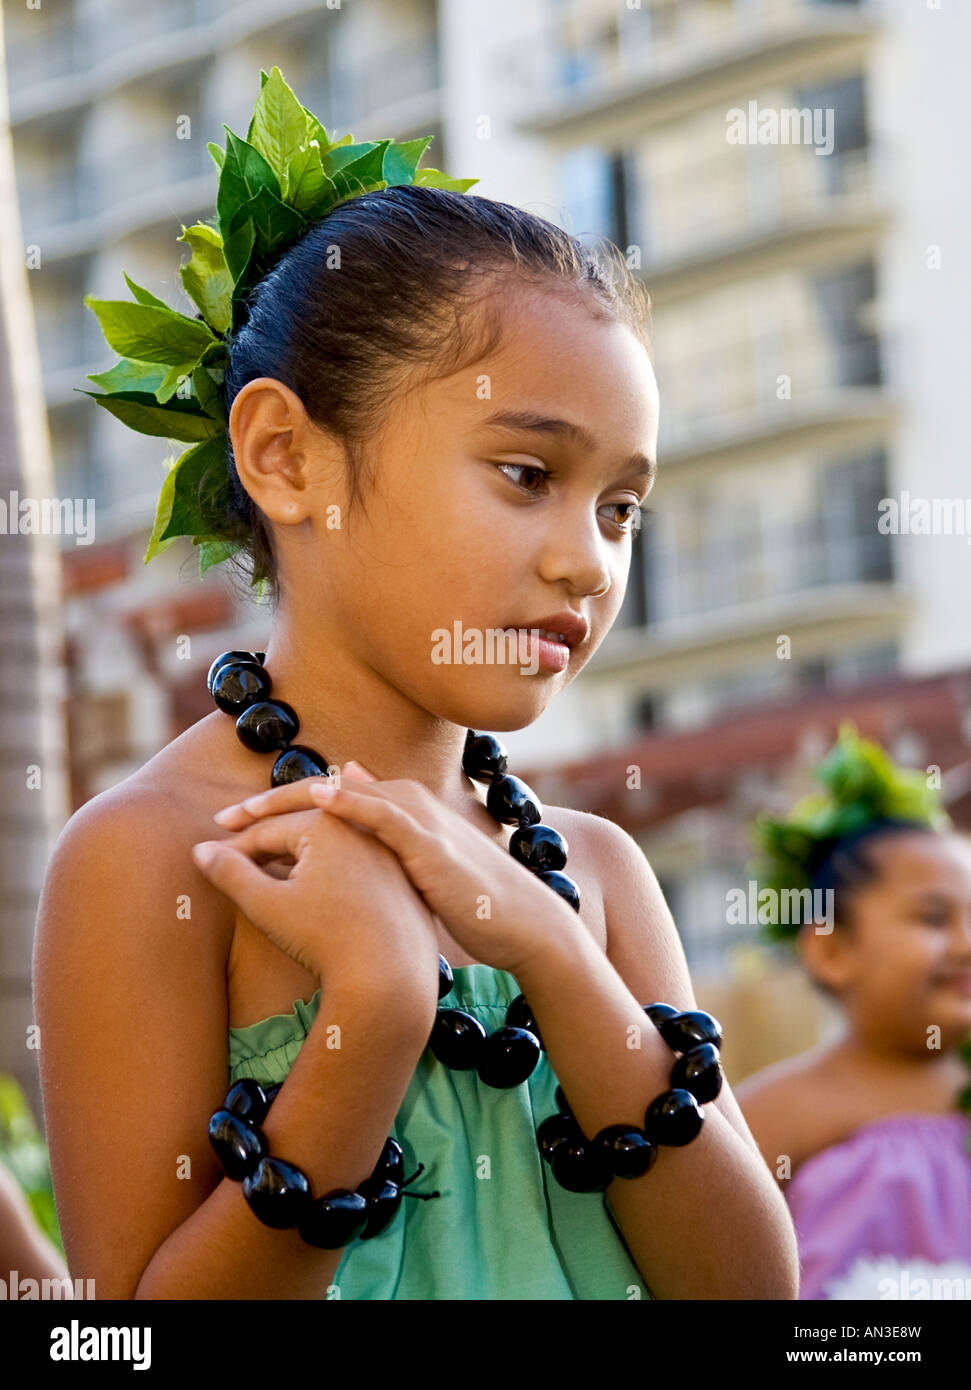 Hawaiian Girls High Resolution Stock Photography And Images Alamy